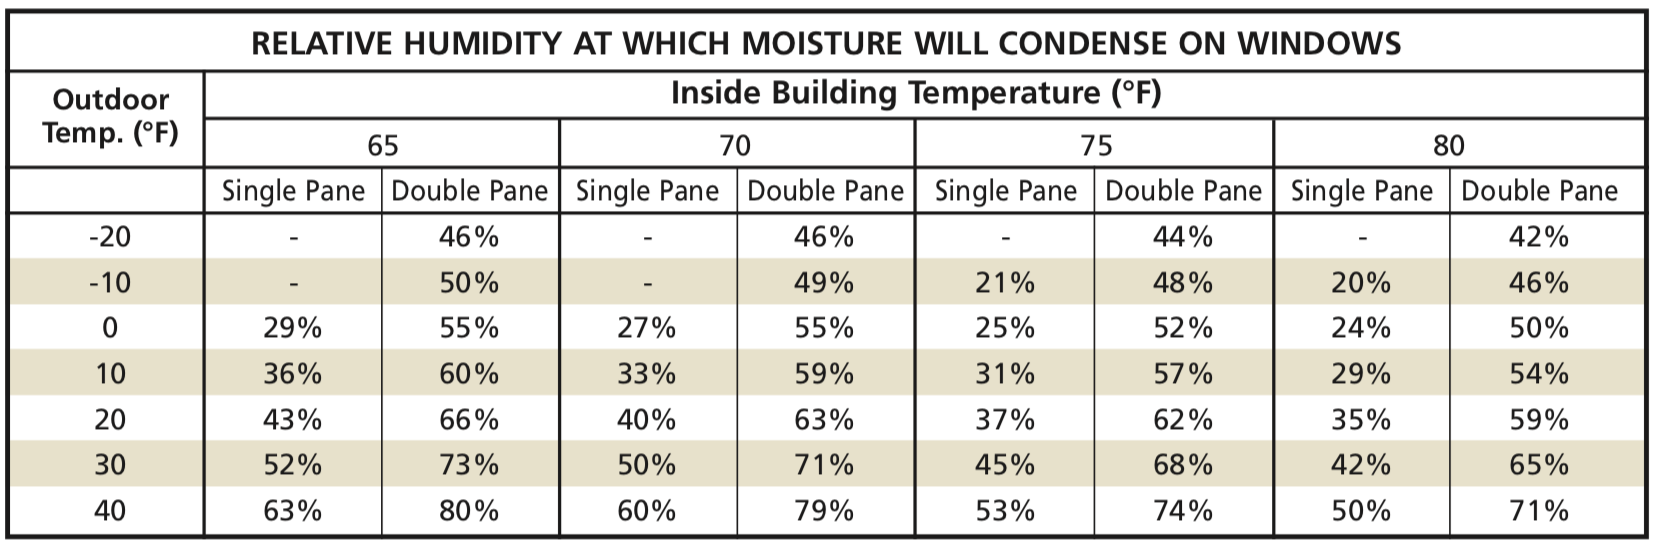 Desert Aire RH condensation on windows, window condensation, relative humidity, natatorium, dehumidification